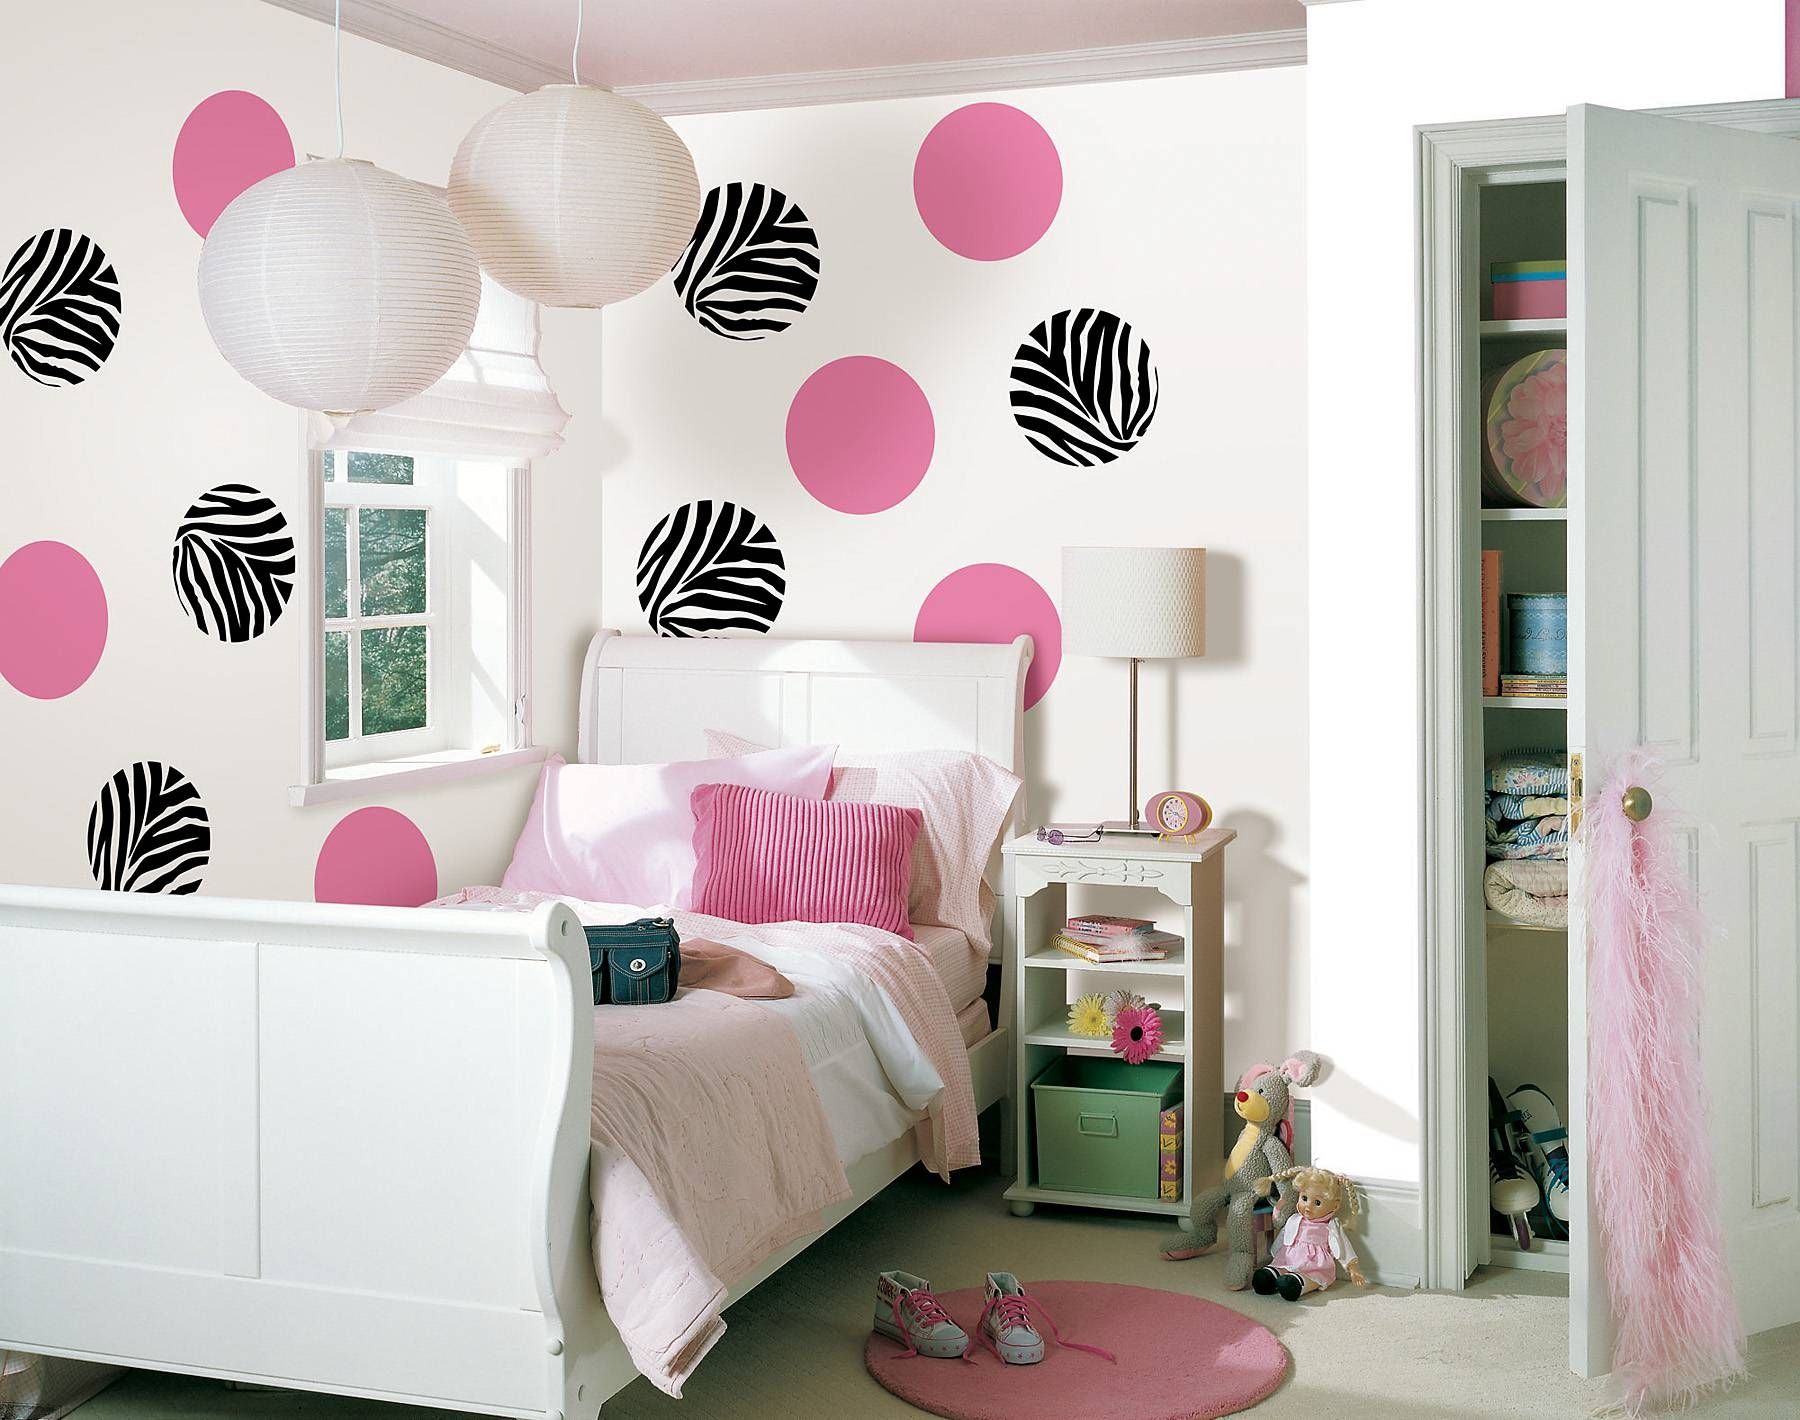 Circle Pink And Black White Zebra Wall Art Connectedpink Bed Regarding Most Popular Wall Art For Teens (View 4 of 20)